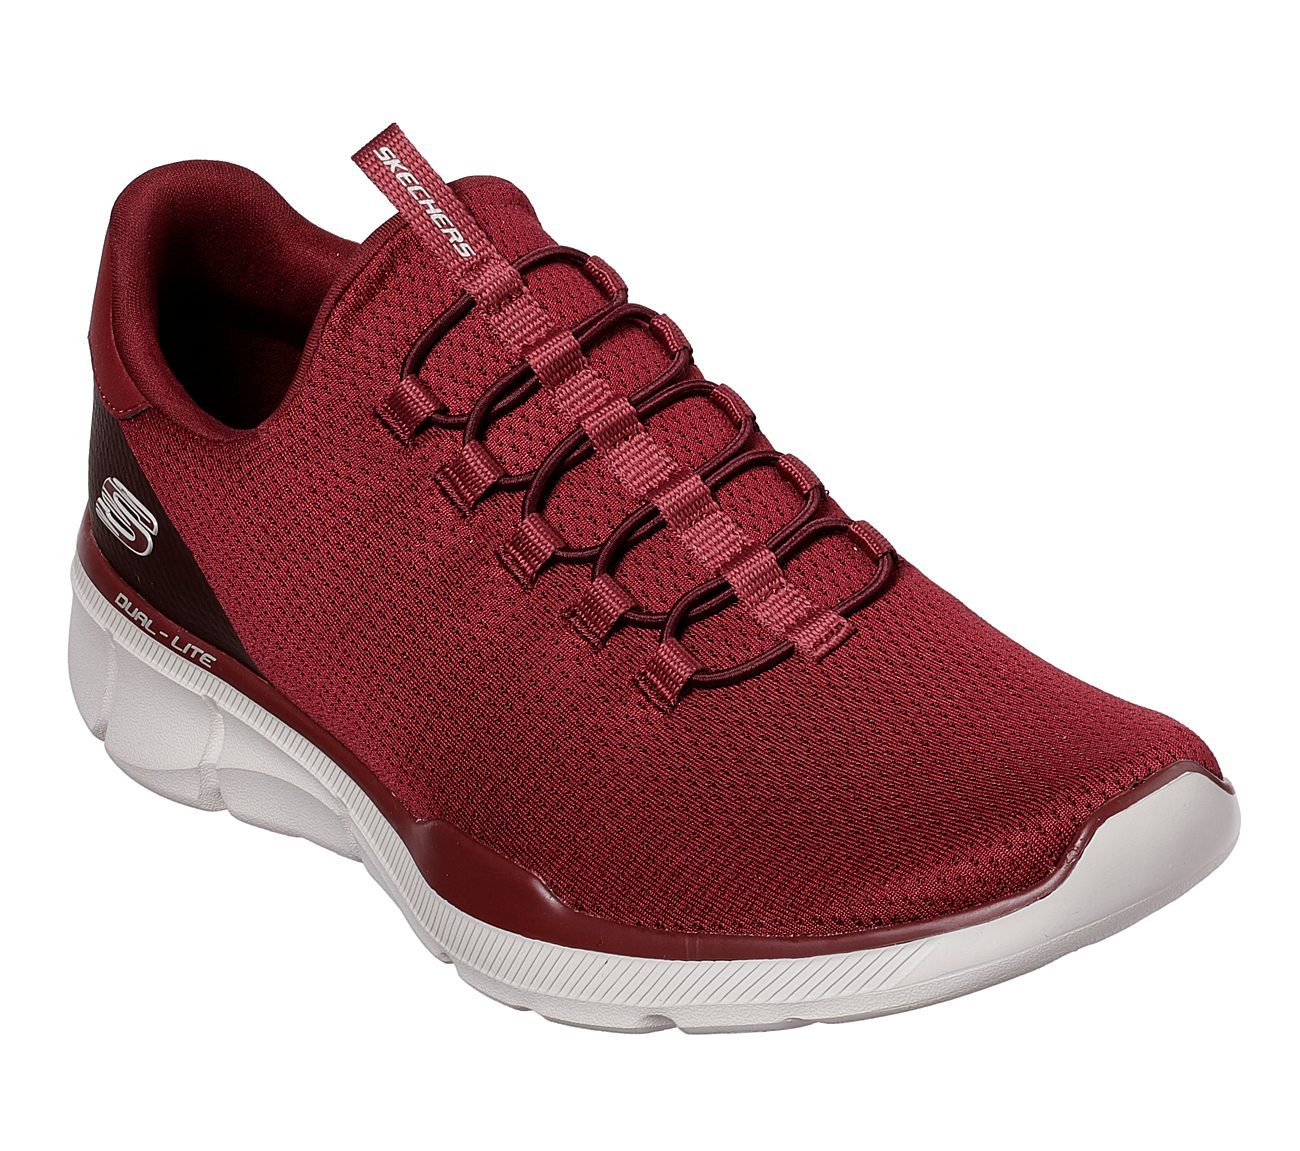 Buy SKECHERS Relaxed Fit  Equalizer 3.0 - Emrick Relaxed Fit Shoes ... 74fc83cec38d8